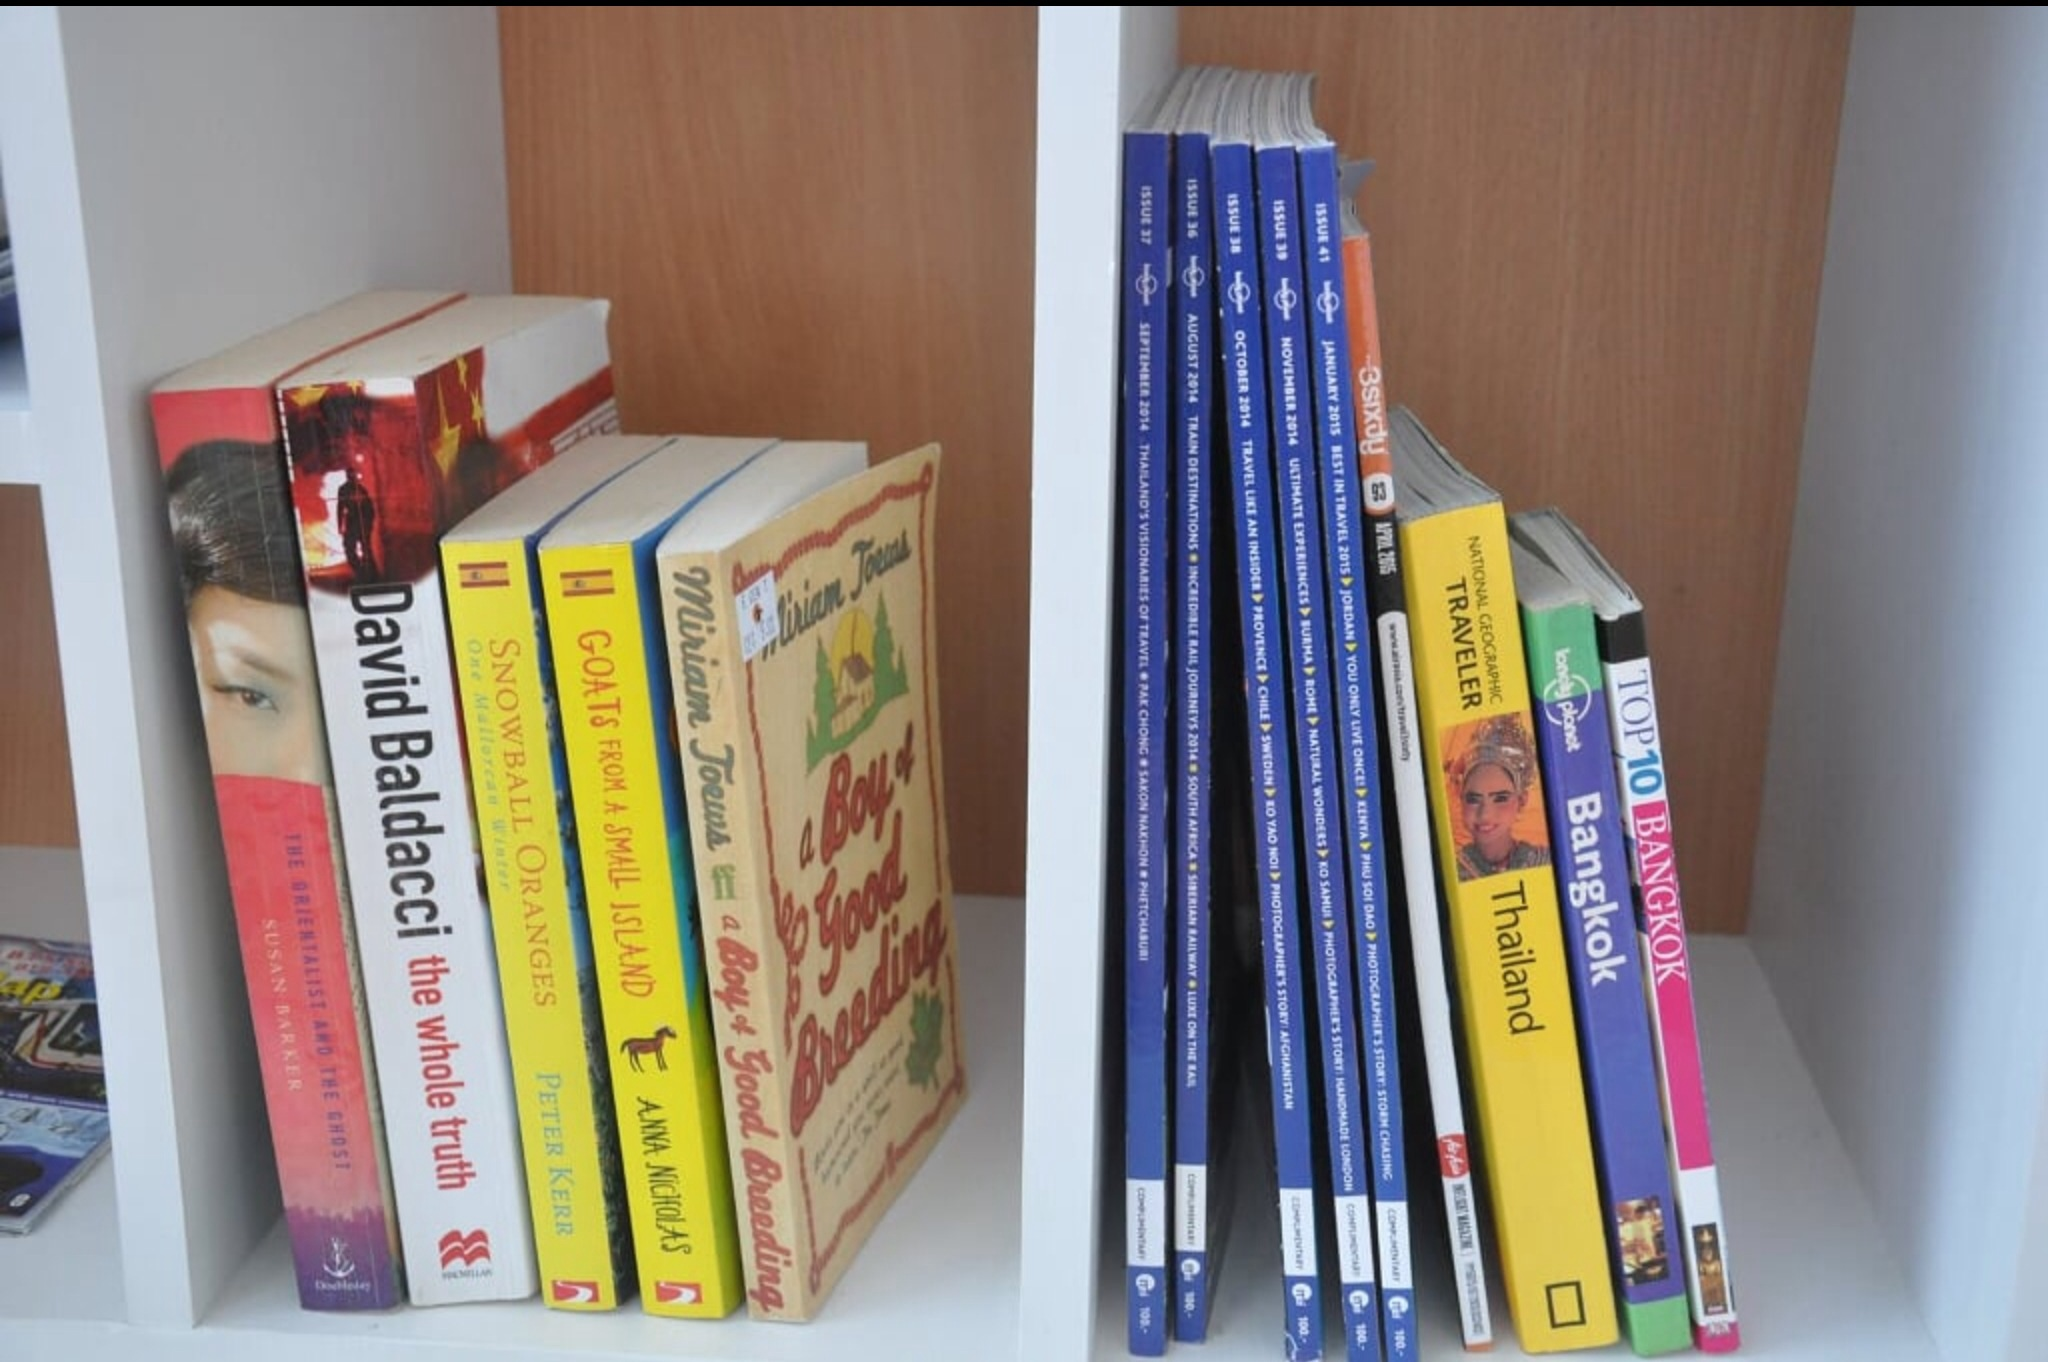 Of course there are Lonely Planet and travel books provided ... abuden?